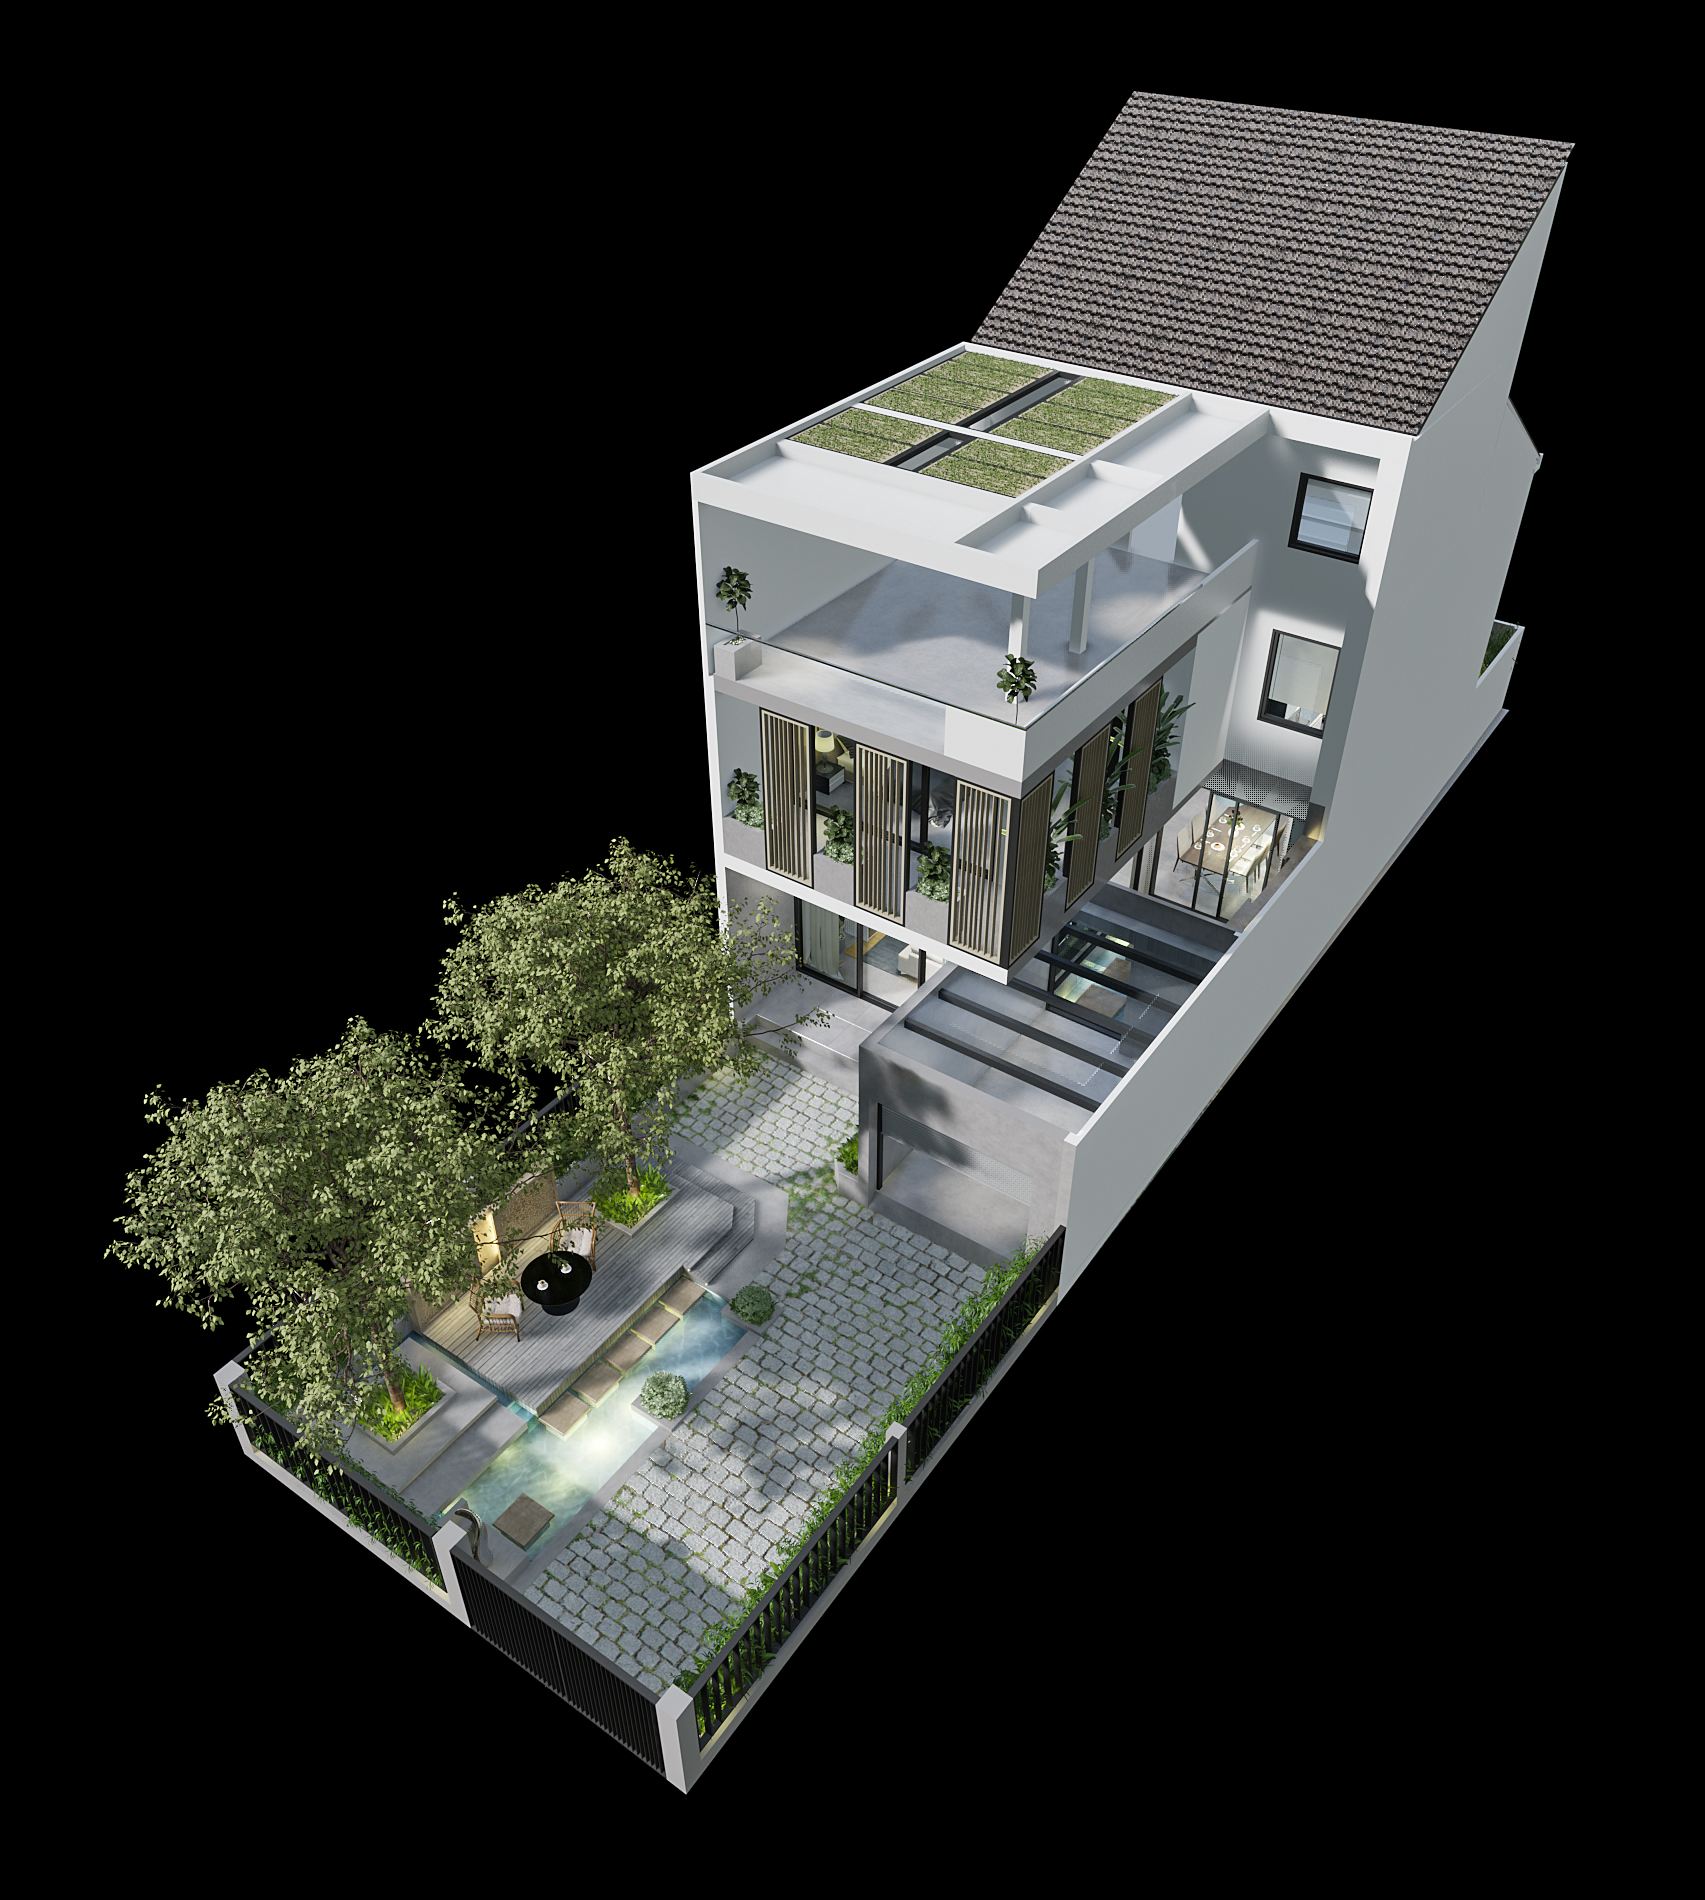 House Design - Finished Projects - Blender Artists Community on house layout, house designing, house schematics, house print, house paint, house desings, house style, house exterior, house rooms, house color, house blueprints, house template, house cutout, house map, house diagram, house logo, house drawing, house types, house interiors, house plans,